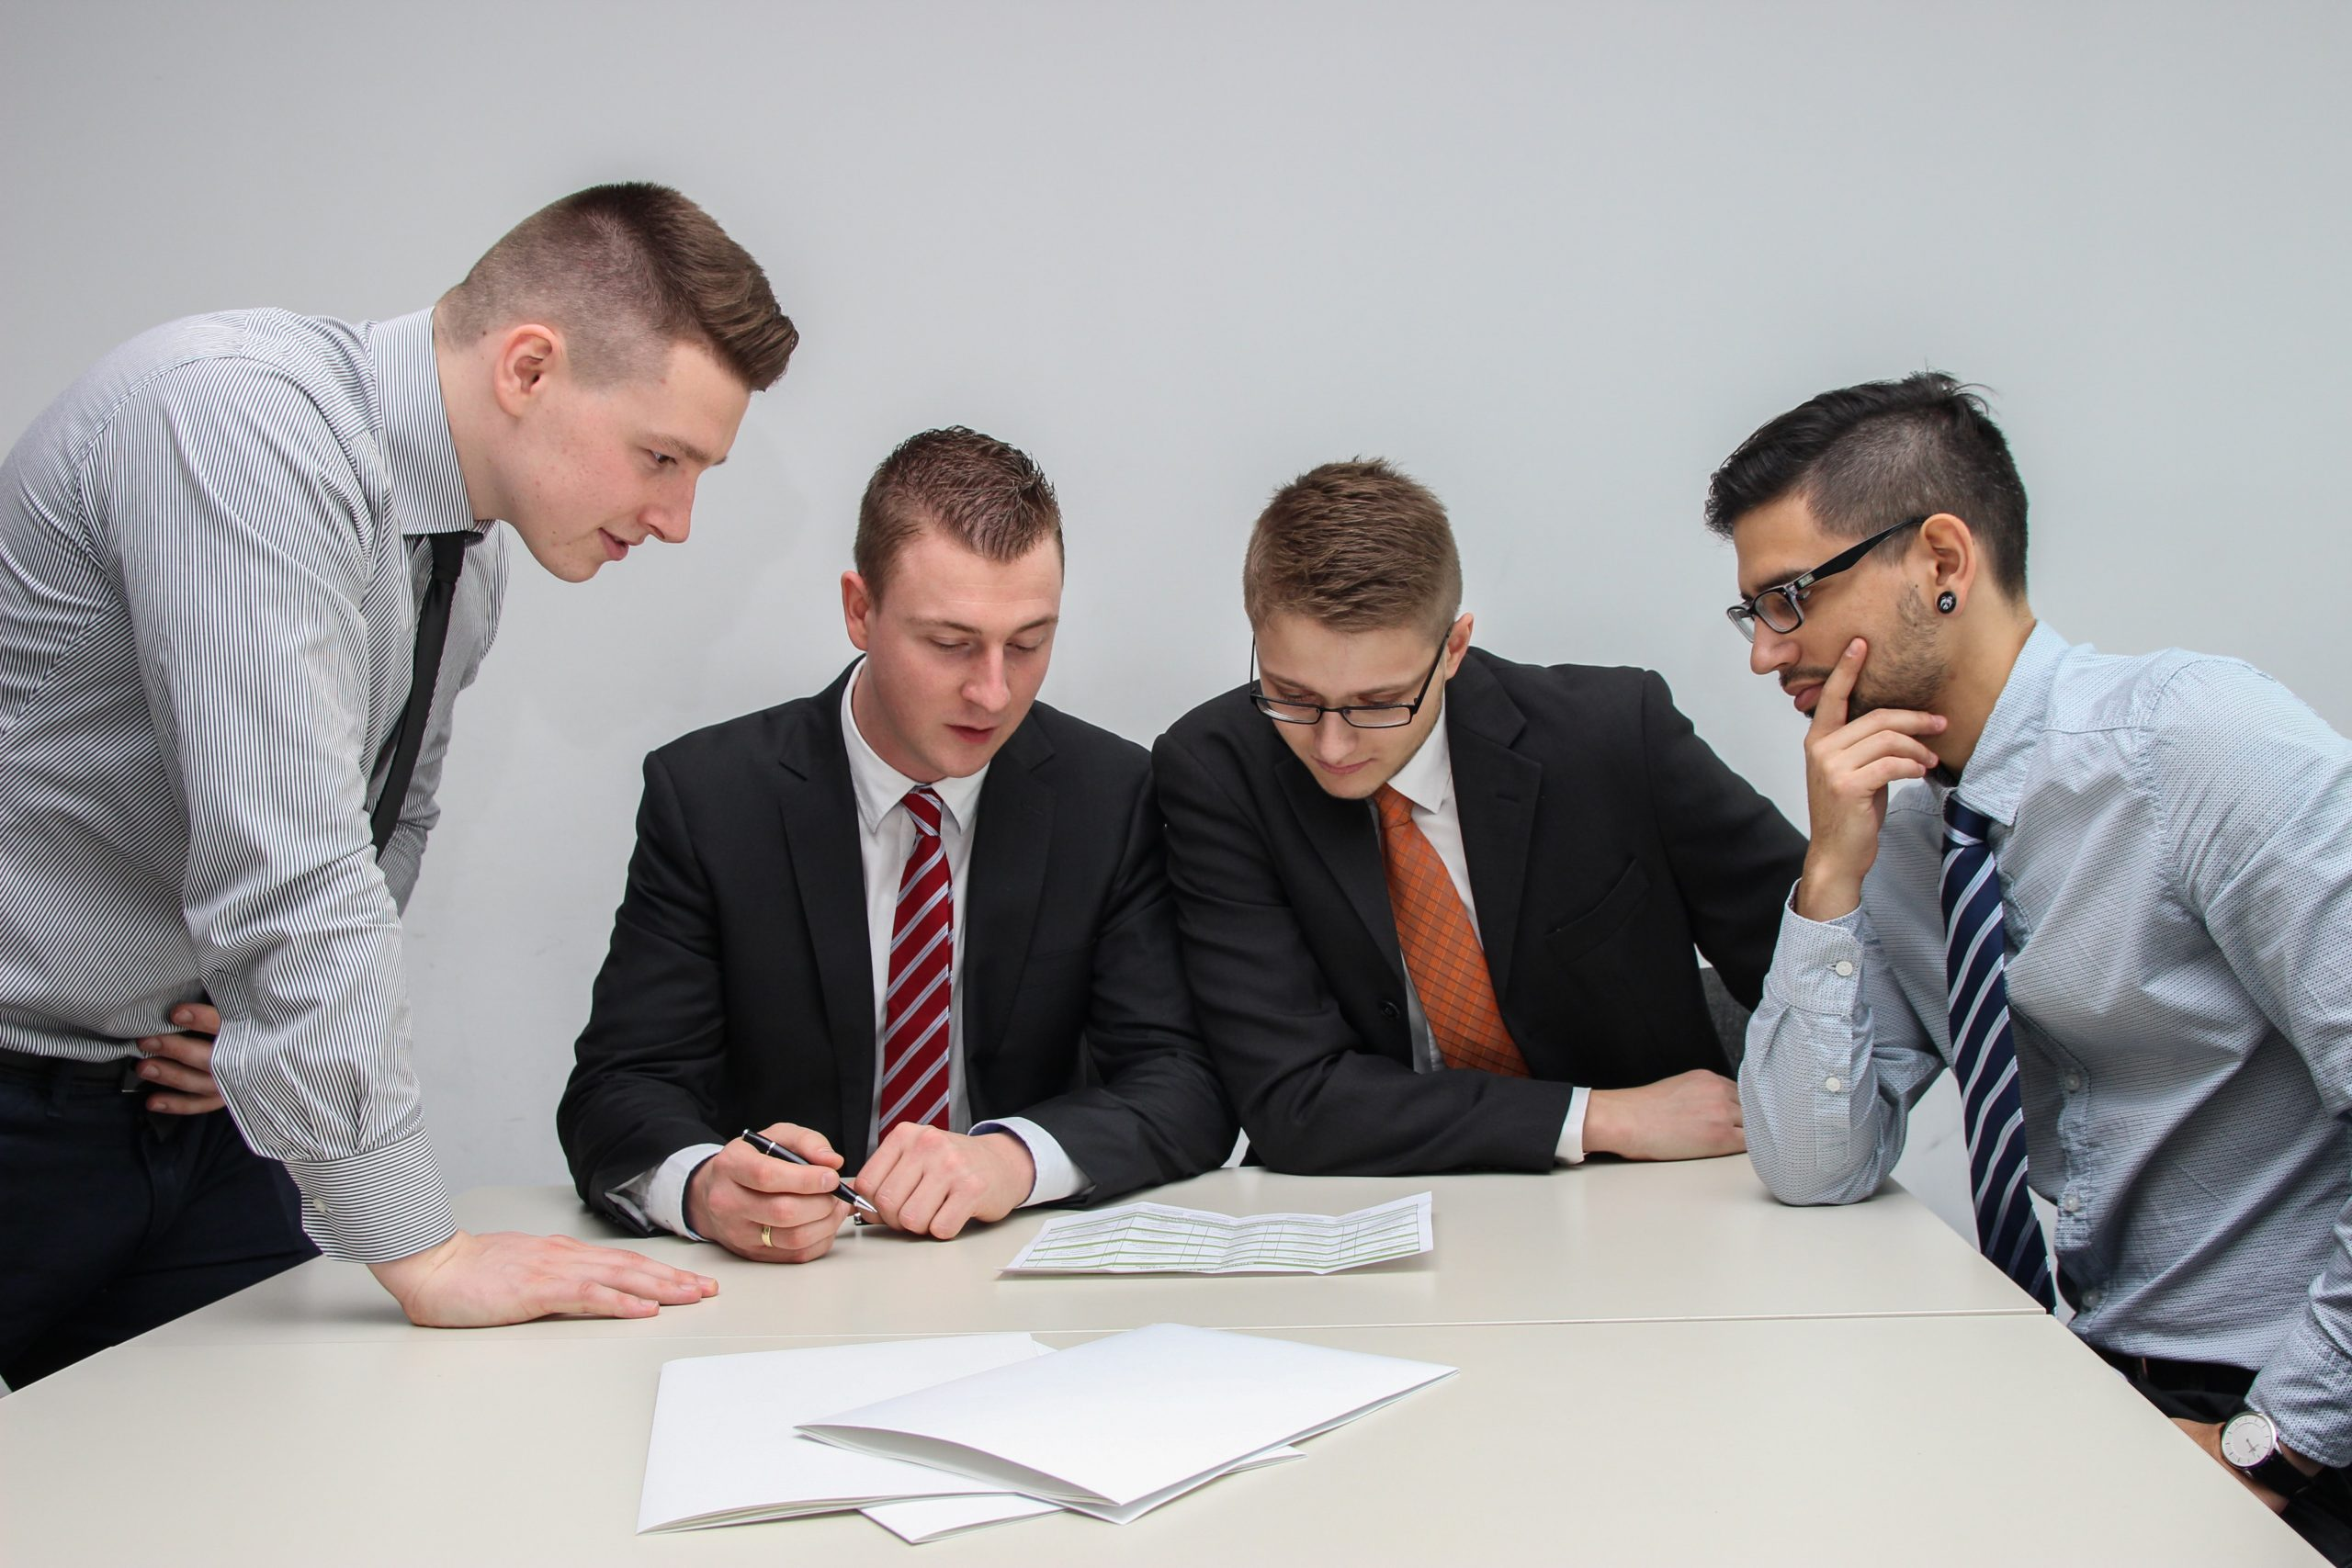 Quick tips to land a job interview as a freshers